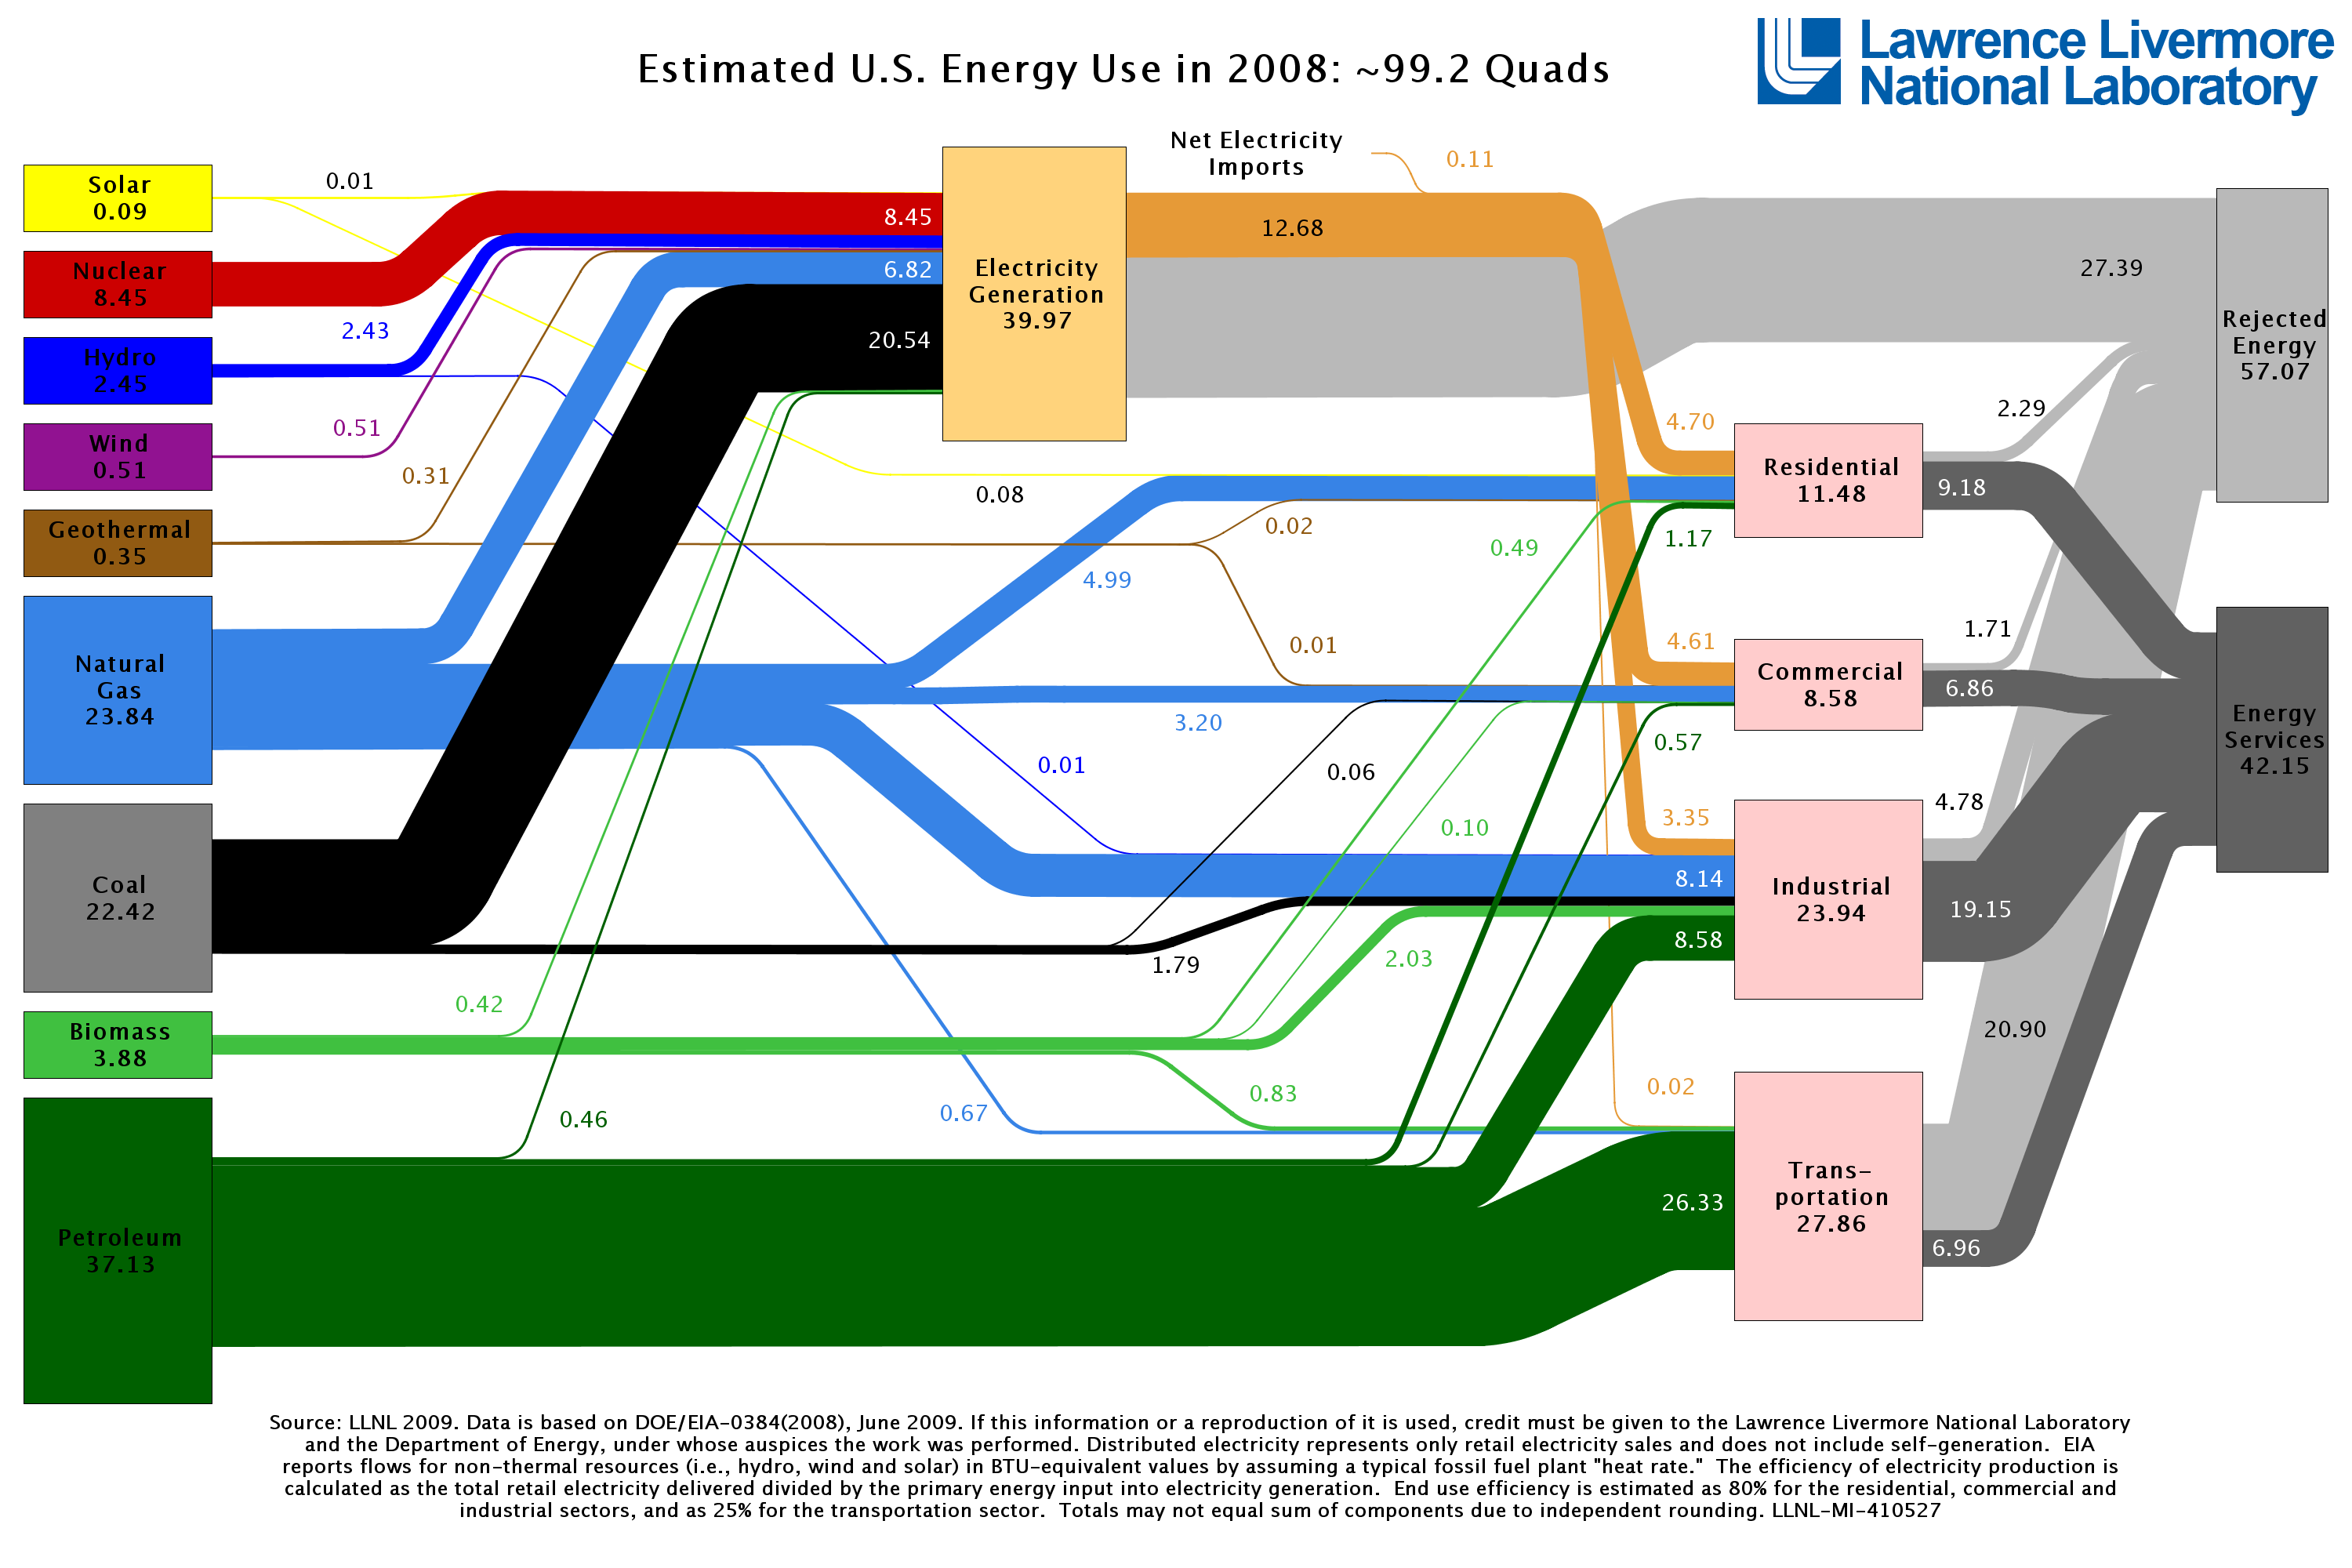 US energy flows diagram for the year 2008, from the Lawrence Livermore National Lab